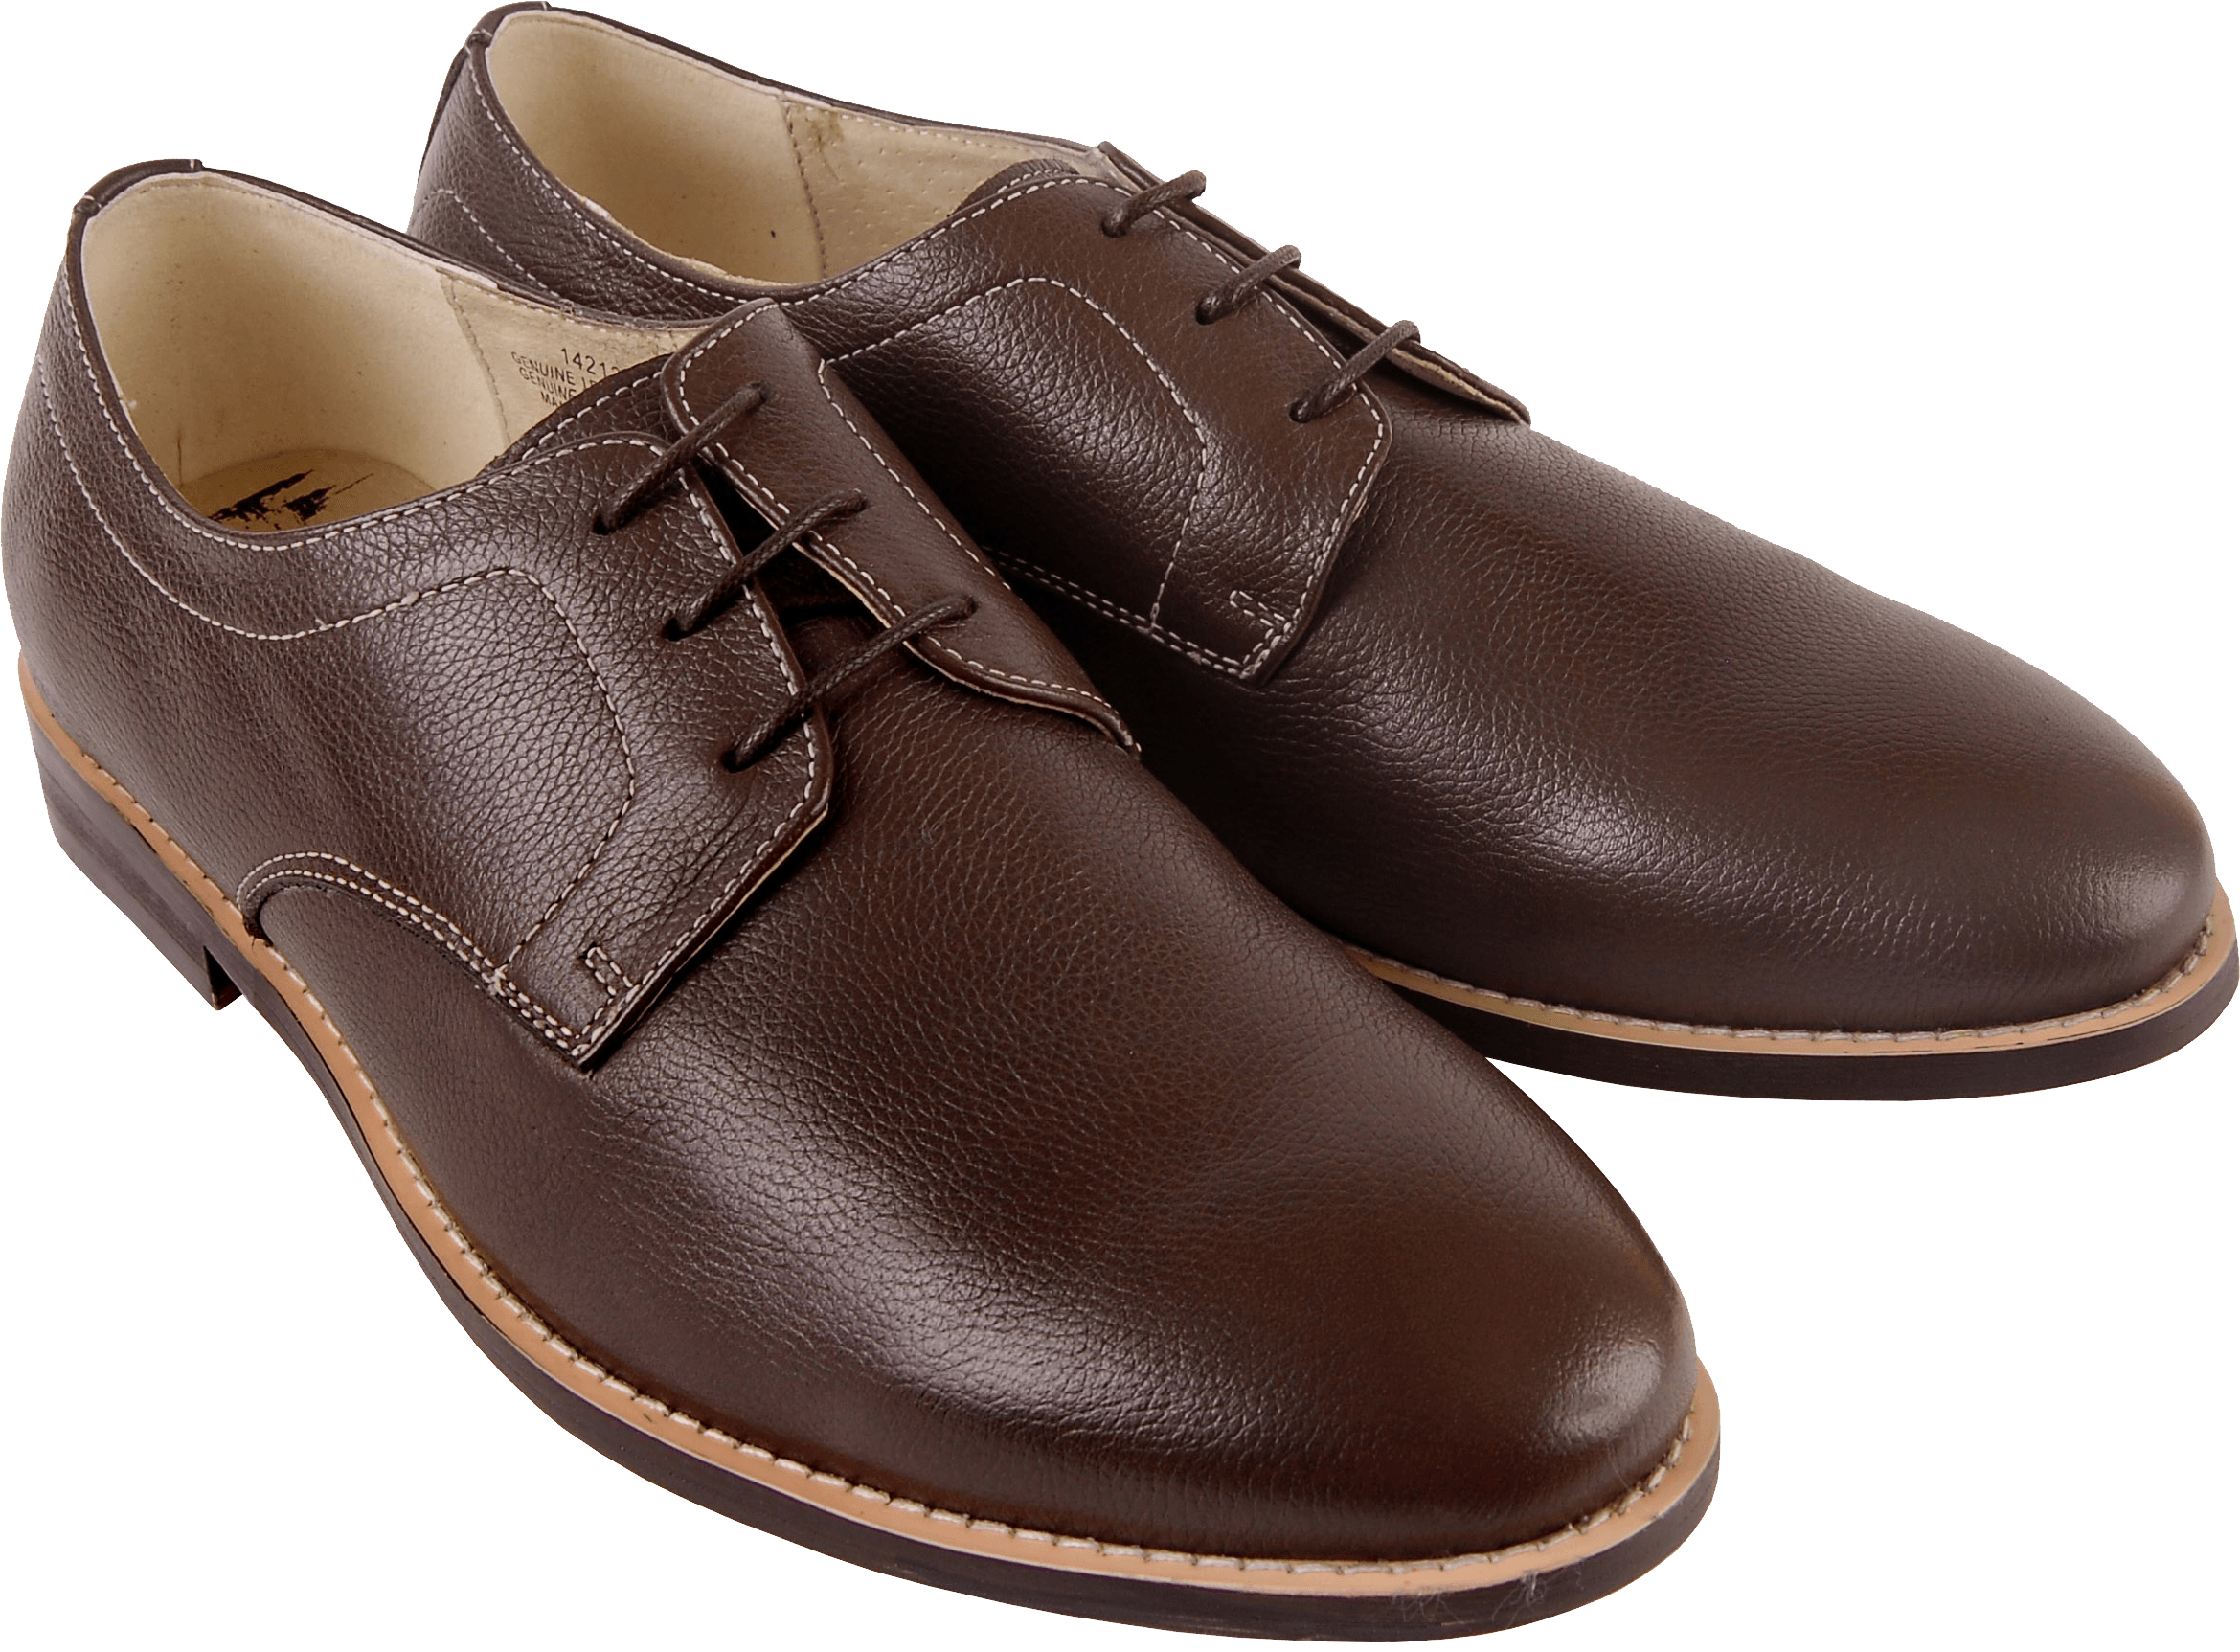 Brown Men Shoes Png Image PNG Image